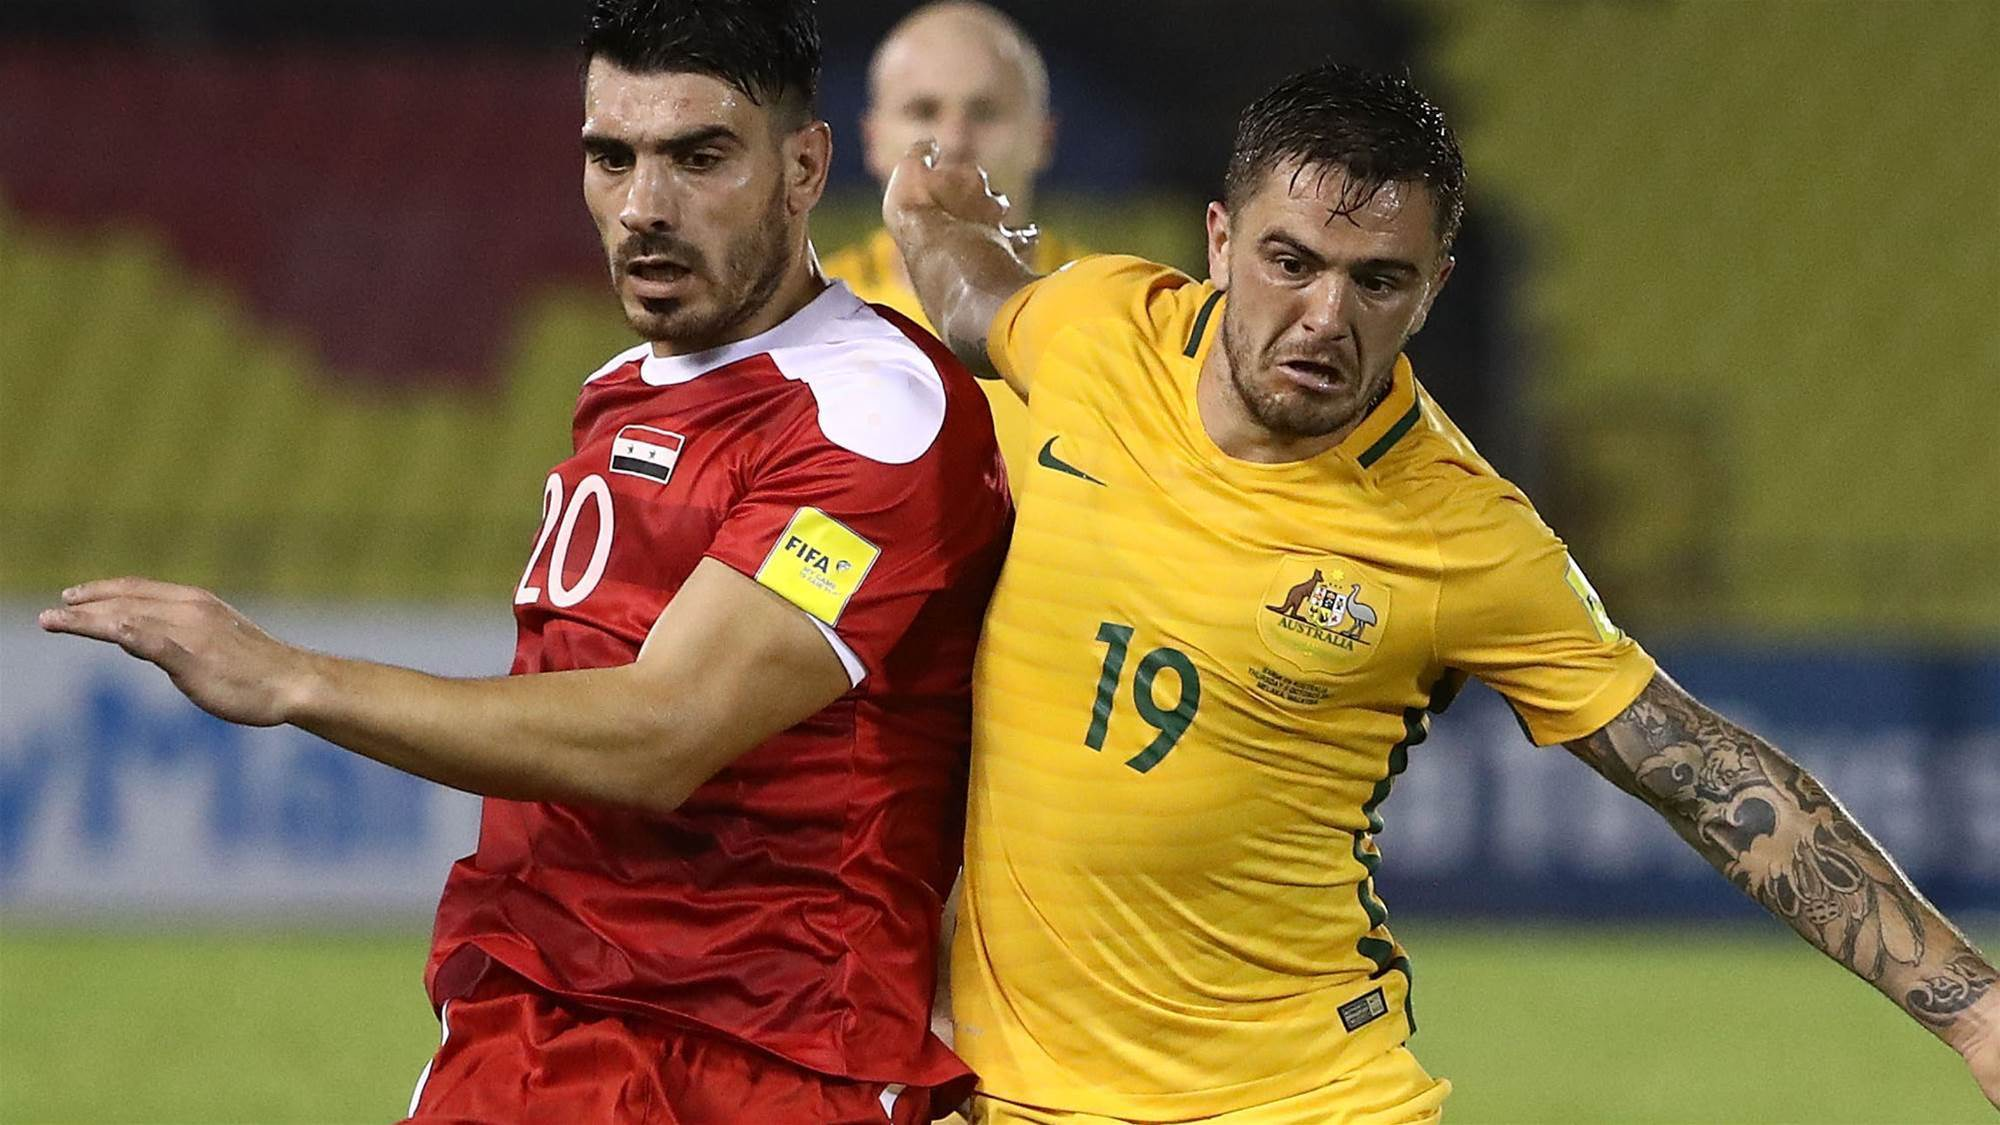 WSW example shows Ange exit won't affect Roos